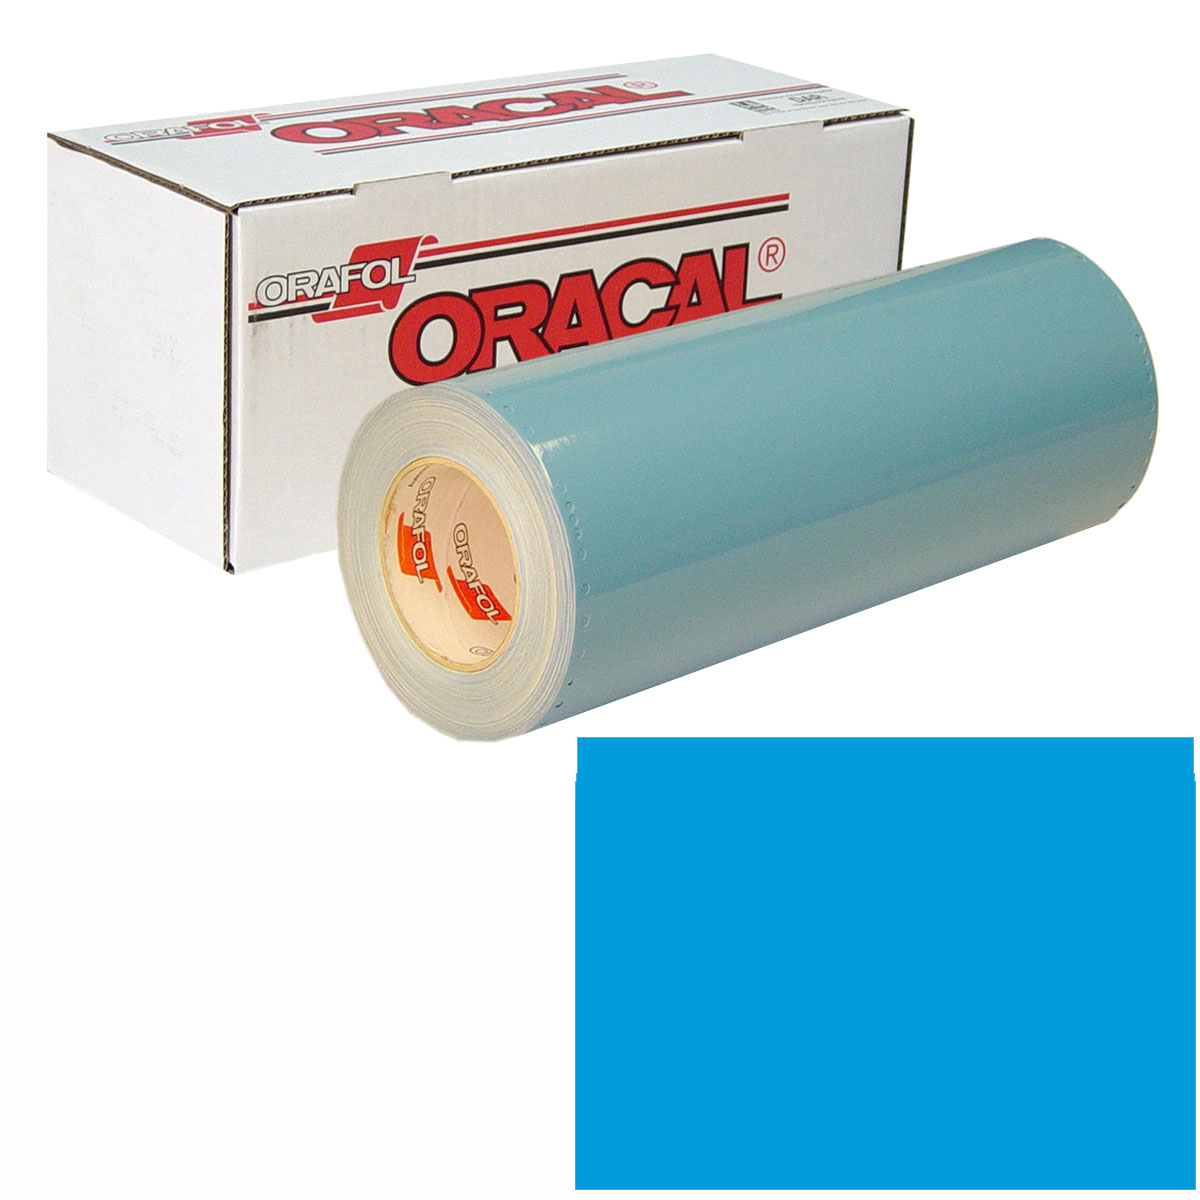 ORACAL 751 30in X 10yd 053 Light Blue